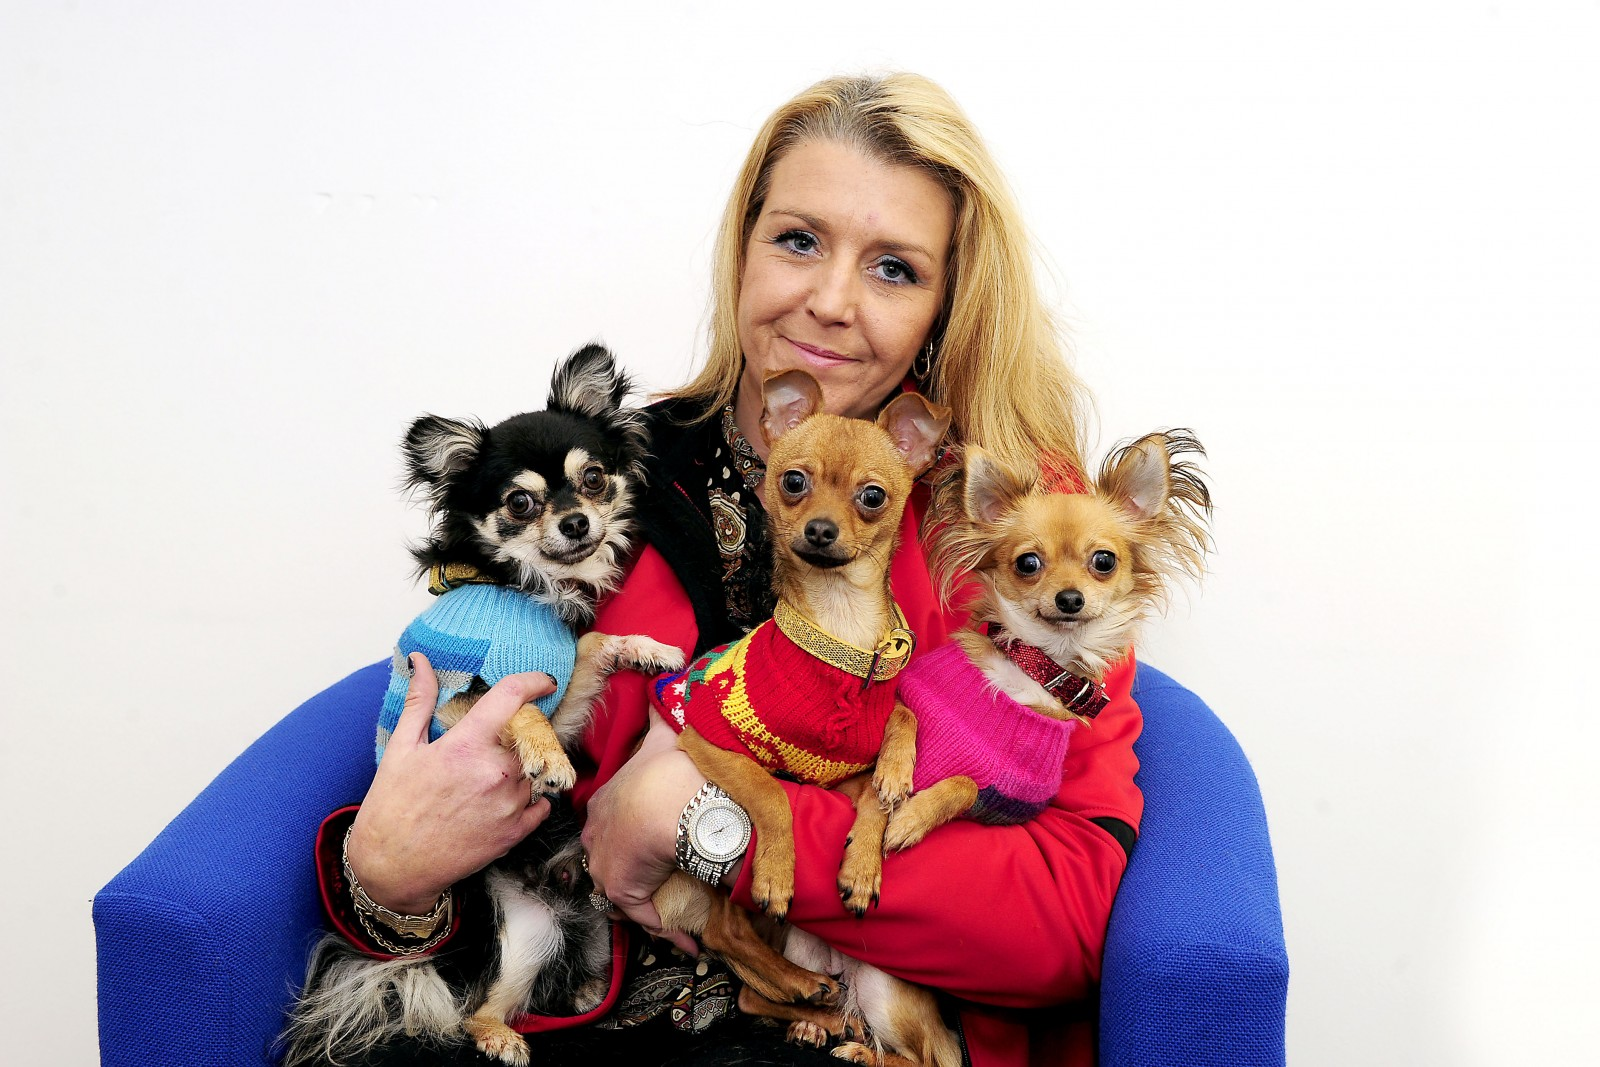 Owner forced to pay a RANSOM for the safe return of her abducted Chihuahuas